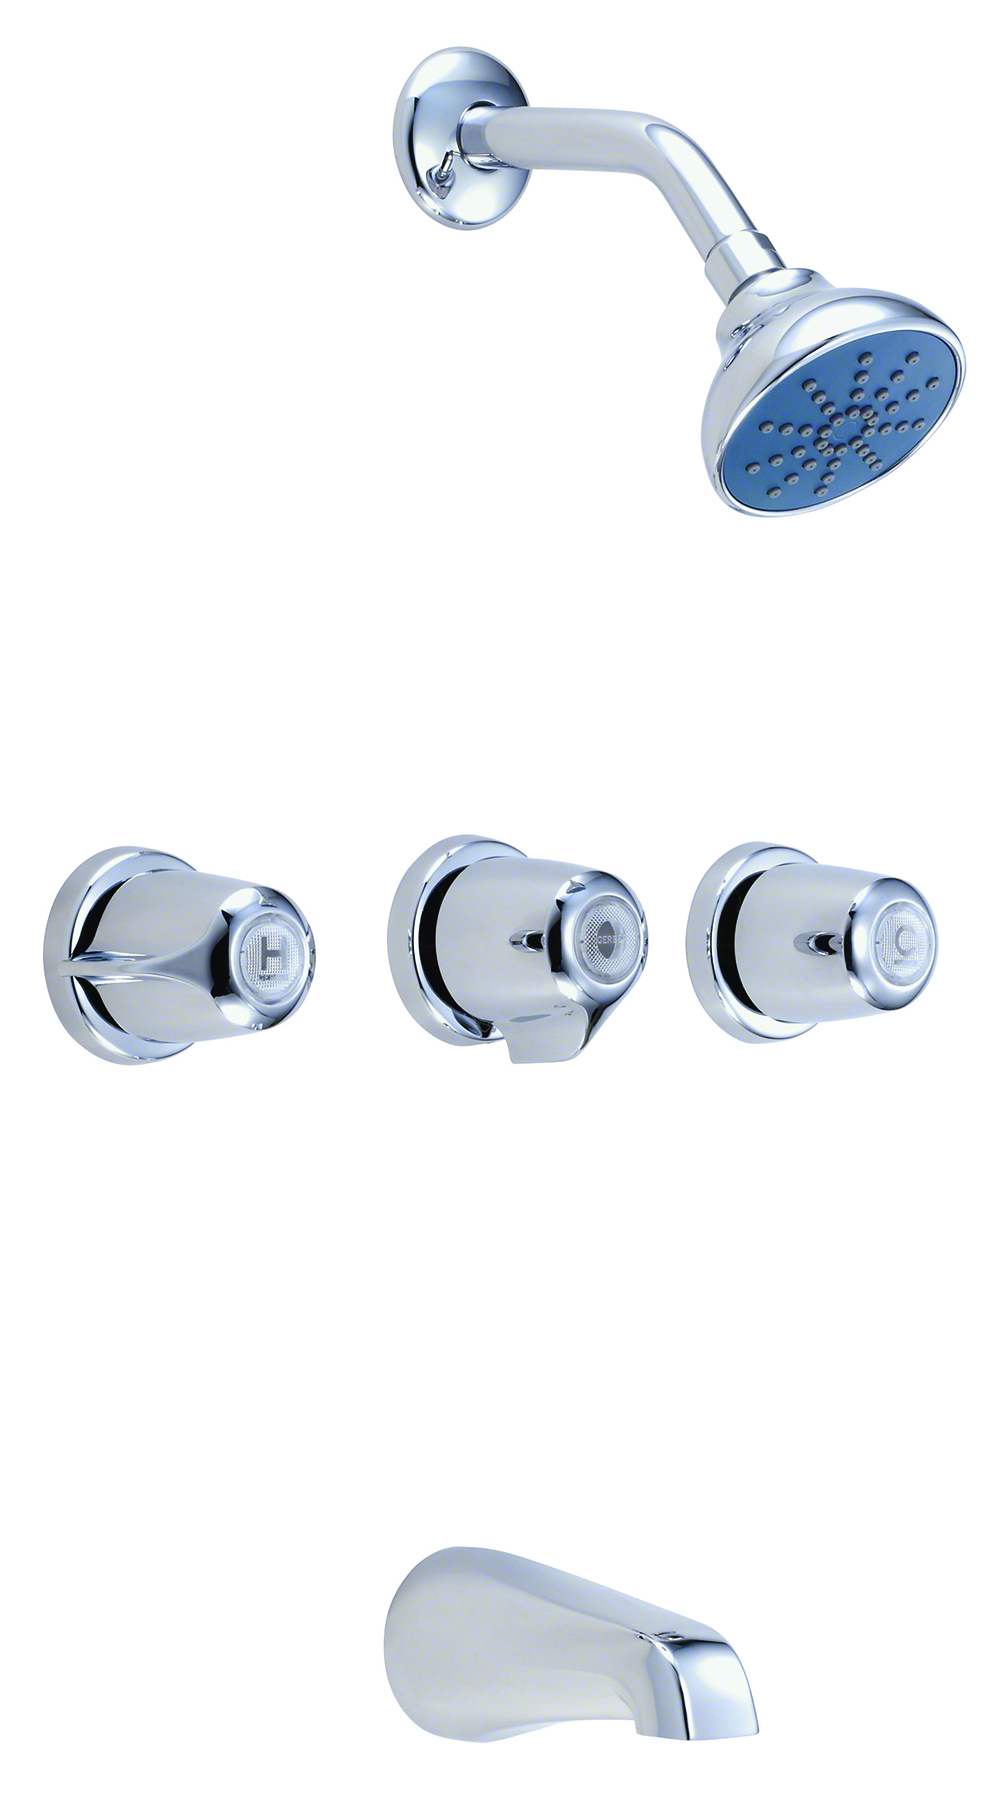 medium resolution of gerber classics three handle threaded escutcheon tub shower fitting with ips sweat connections threaded spout 1 75gpm gerber plumbing